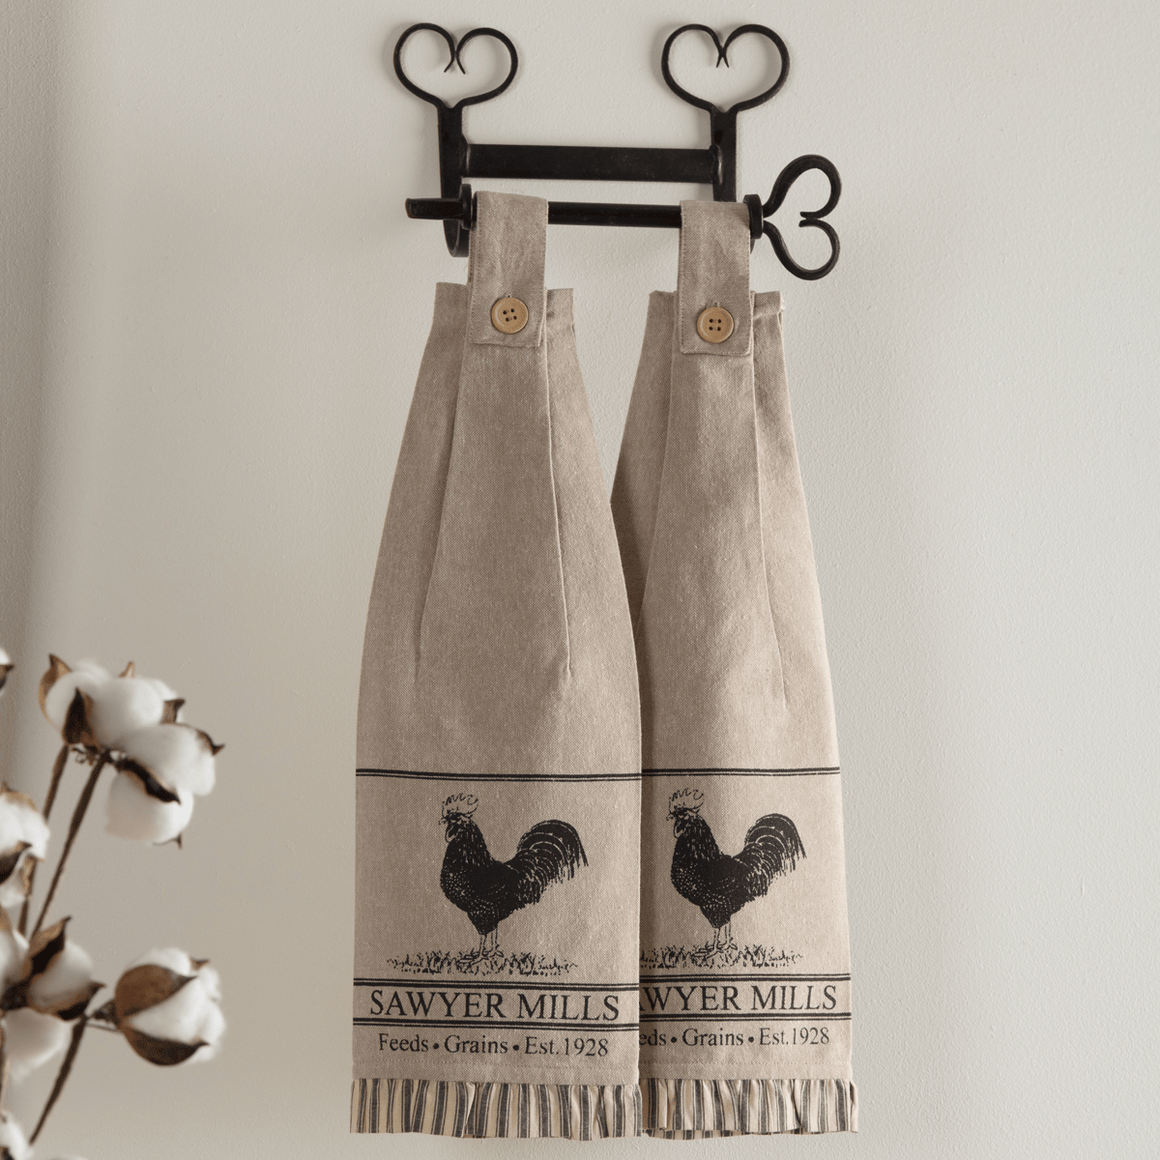 Sawyer Mill Button Loop Kitchen Towel Set - Poultry